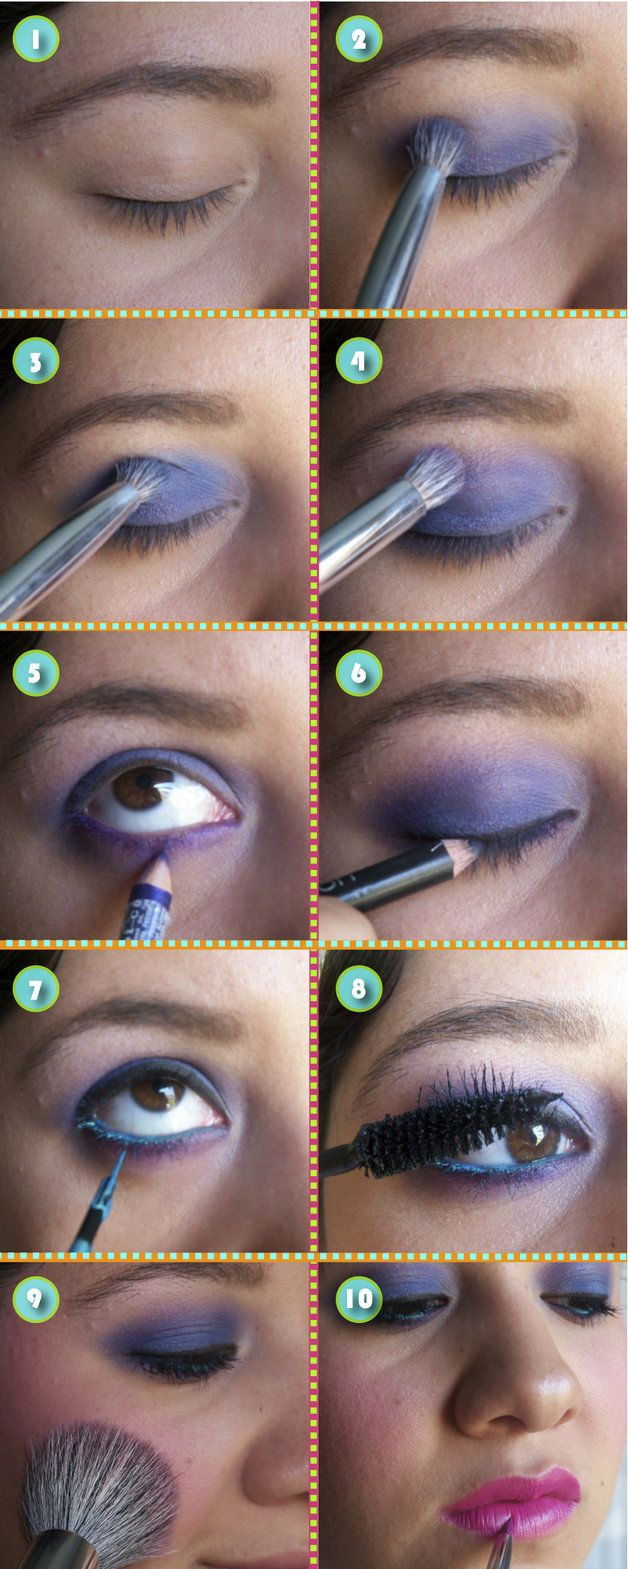 How To Do 80s Makeupgotta Love The 80s Blue Eyeshadow 80s - 80s-eye-makeup